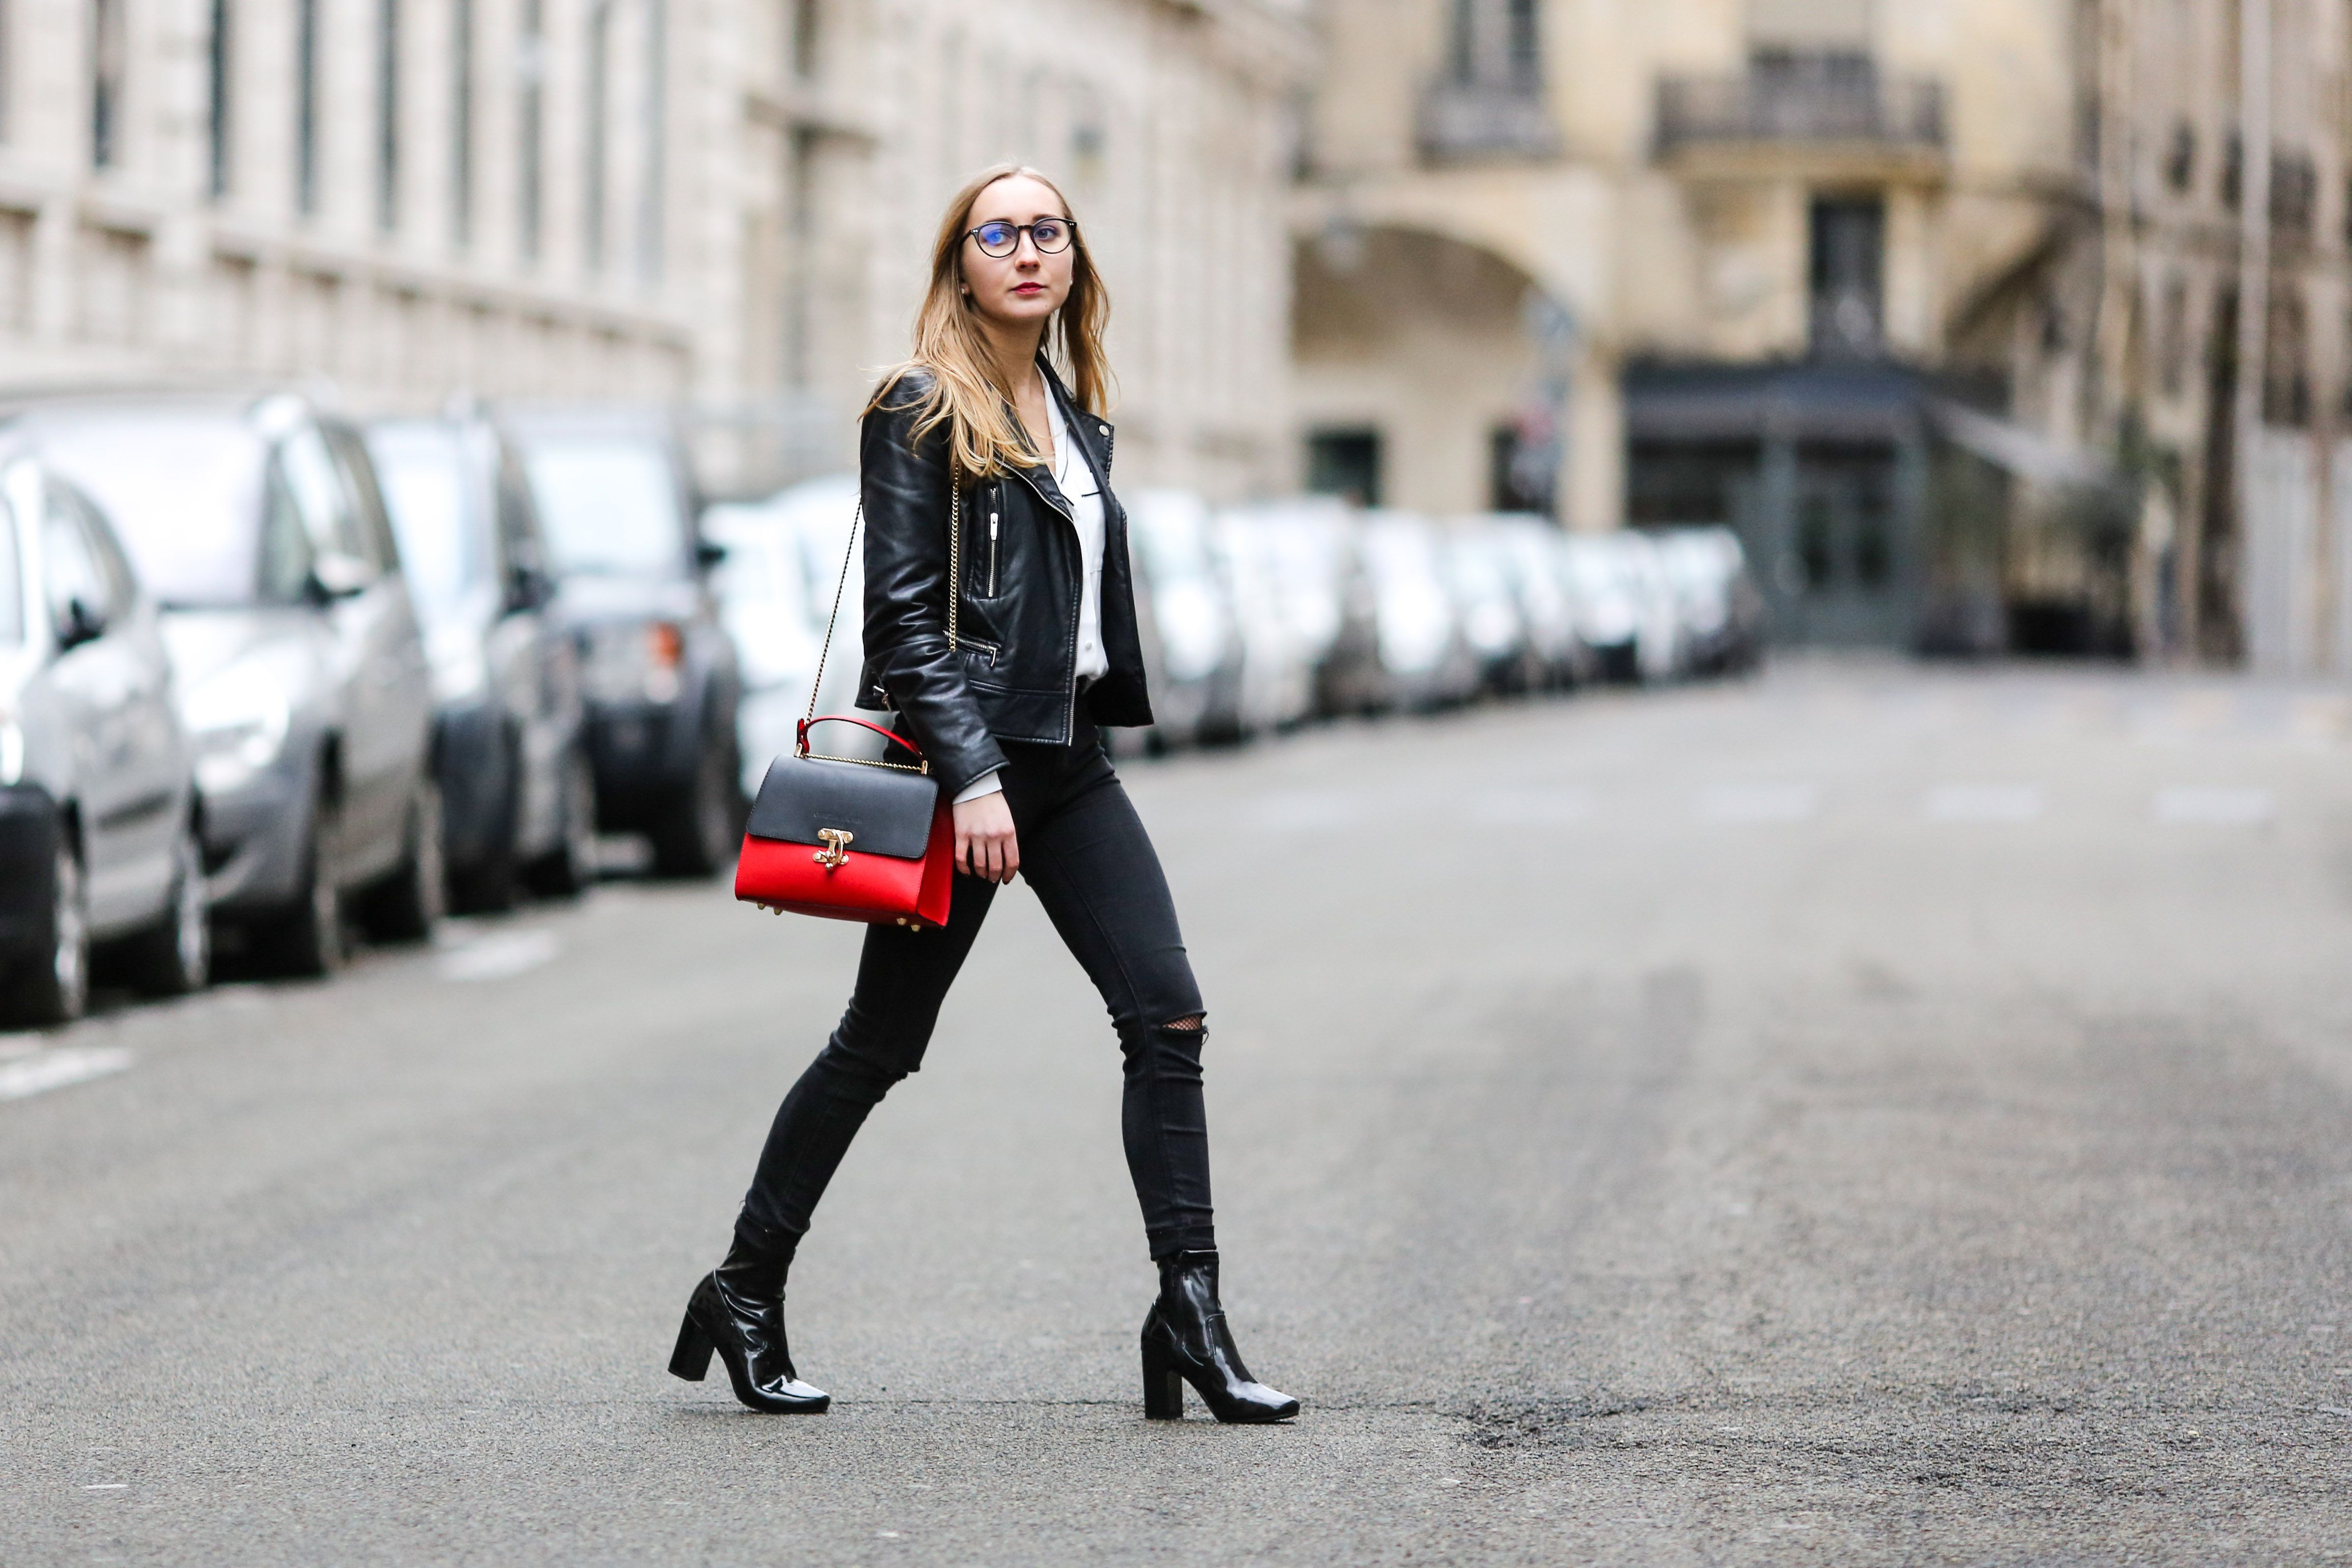 Street style woman in leather jacket and black jeans in Paris France